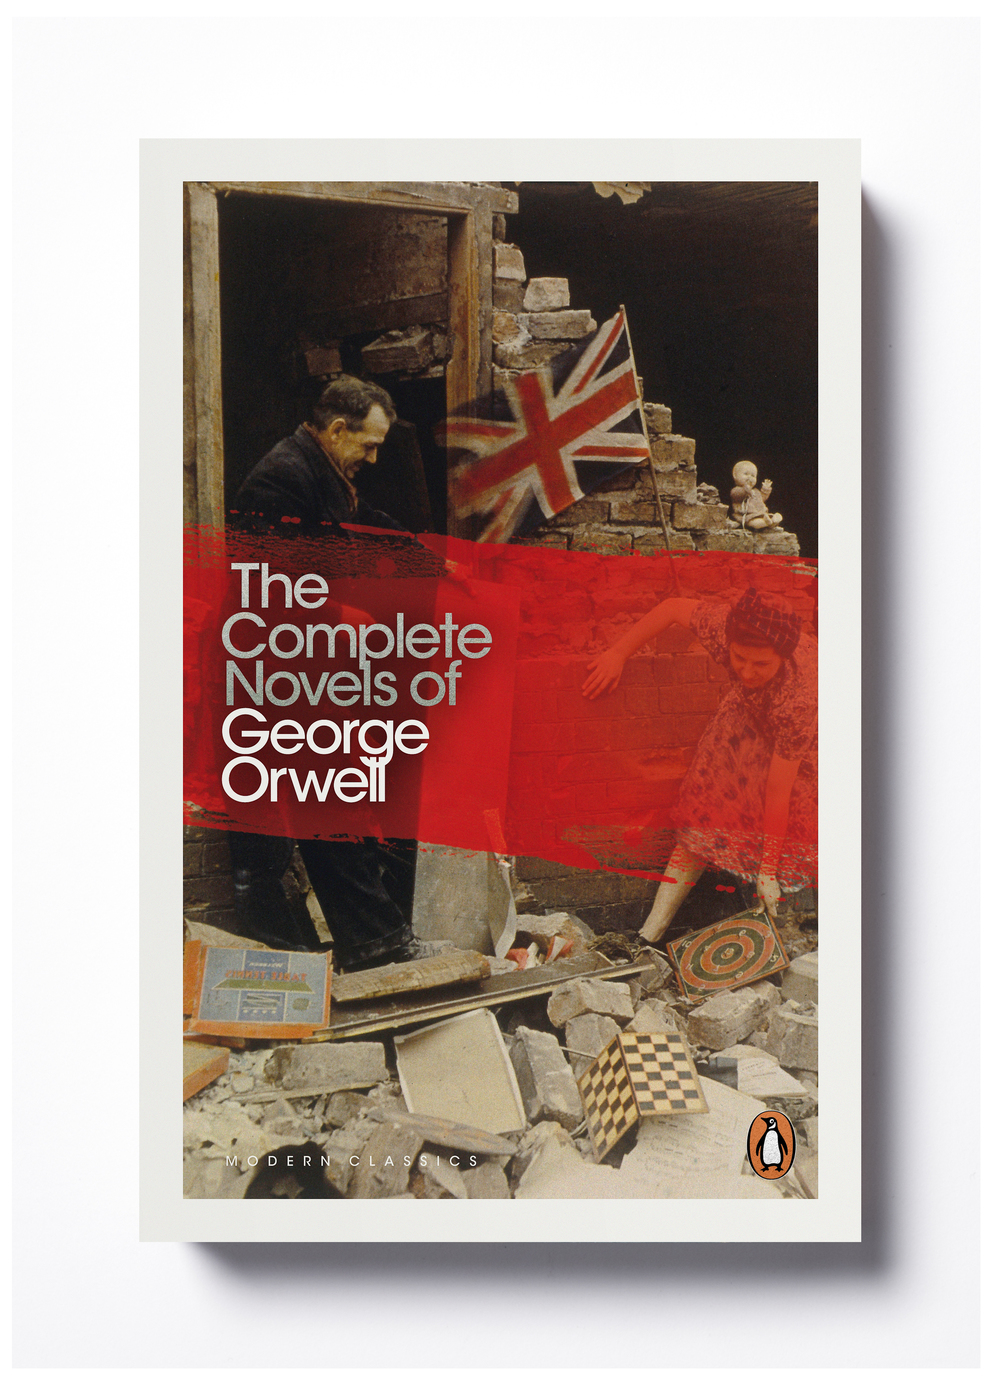 The Complete Novels by George Orwell - Design: Jim Stoddart Photograph: John Hinde